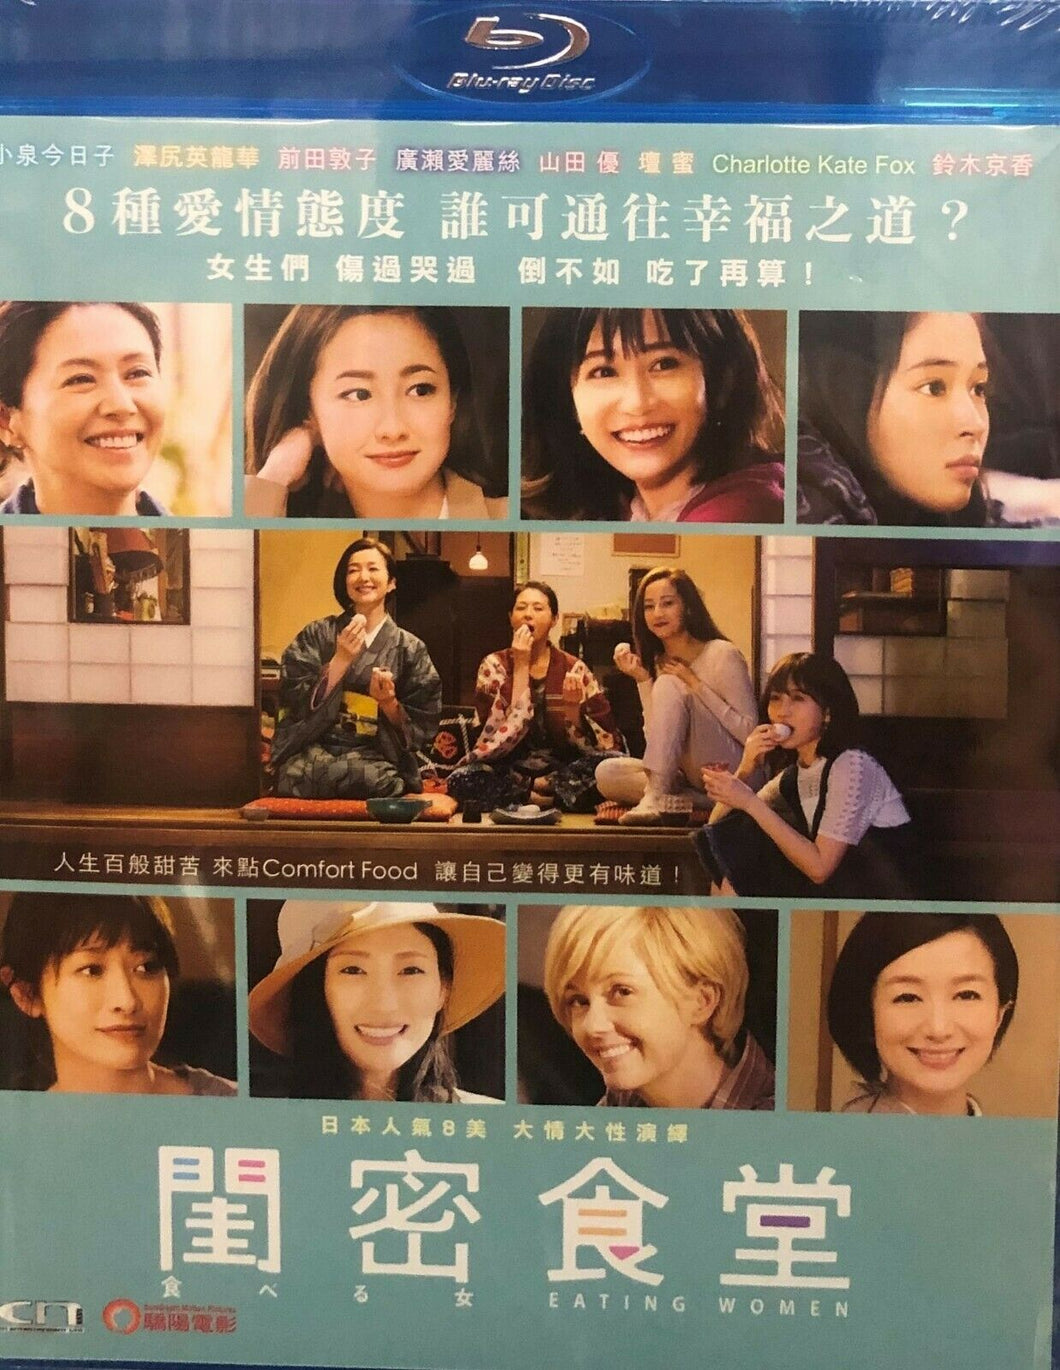 Eating Women 閨密食堂 2018 (Japanese Movie) BLU-RAY with English Sub (Region A)